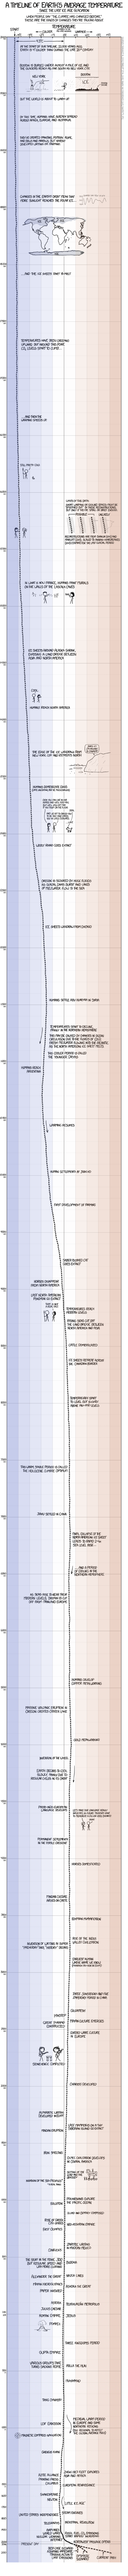 Earth Temperature Timeline